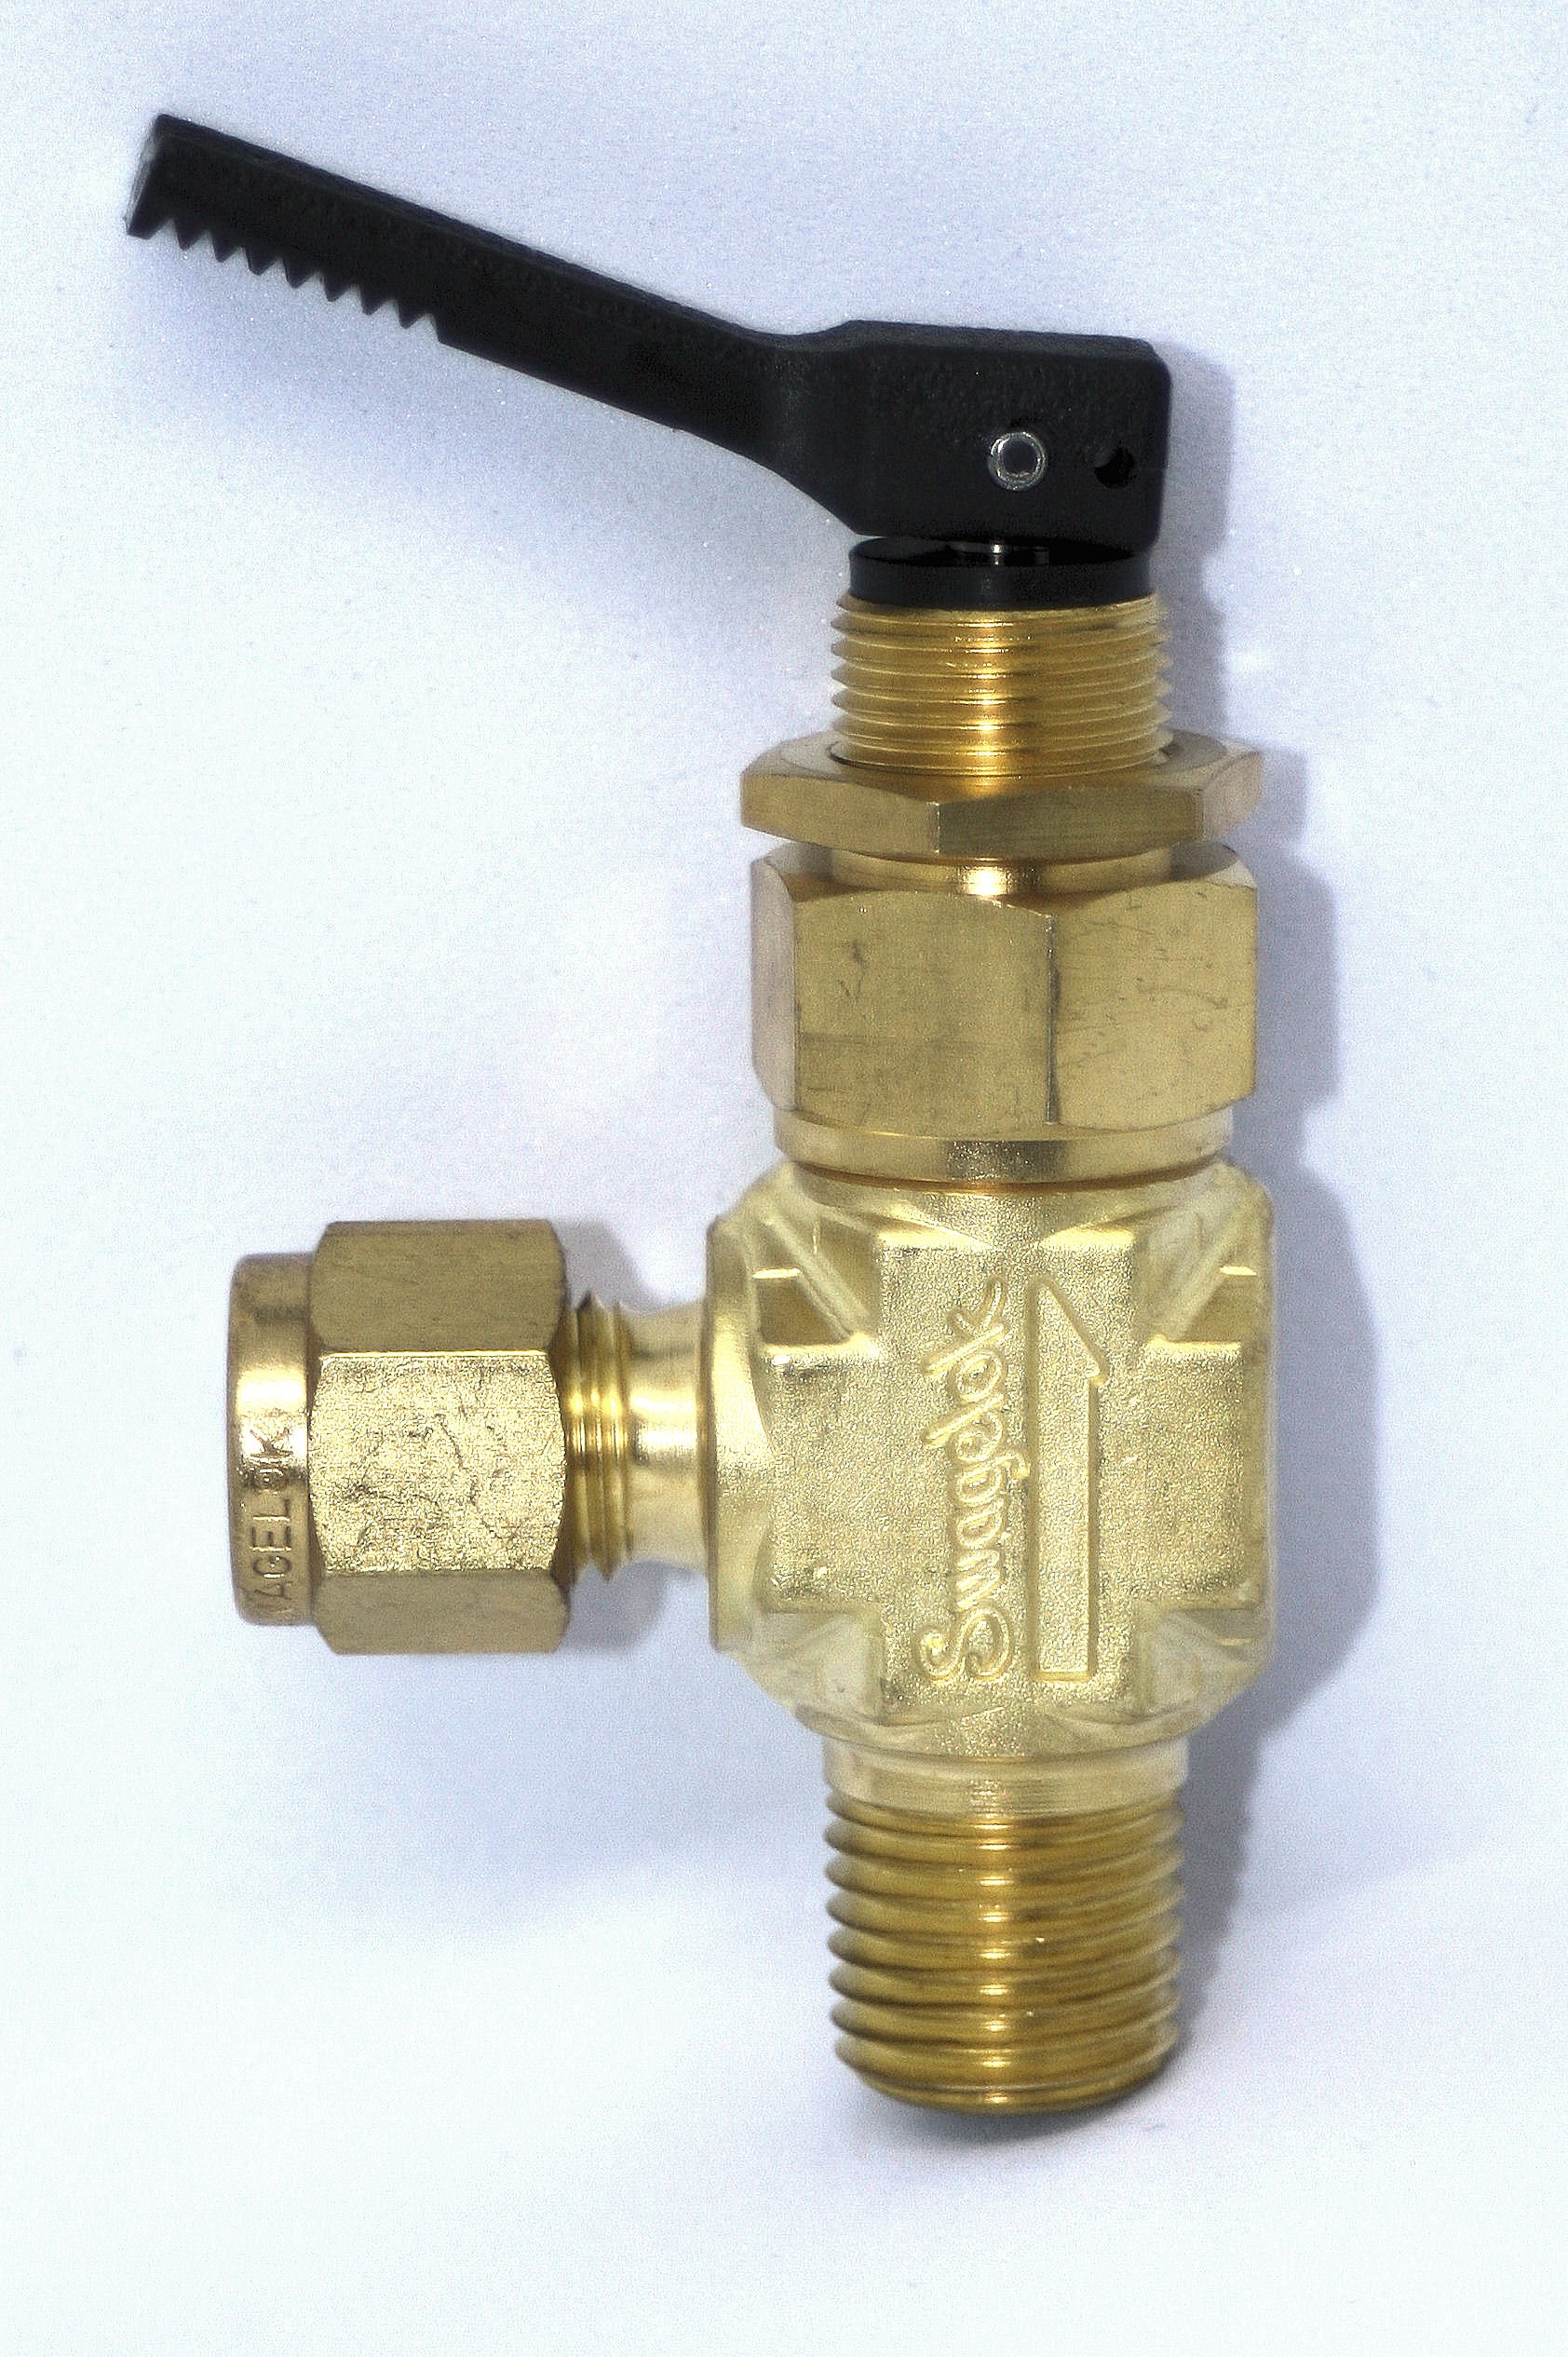 1/4'' Tube x 1/4'' MNPT Brass Angle Toggle Shutoff Needle Valve Swagelok B-1GM4-S4-A by Swagelok B-1GM4-S4-A